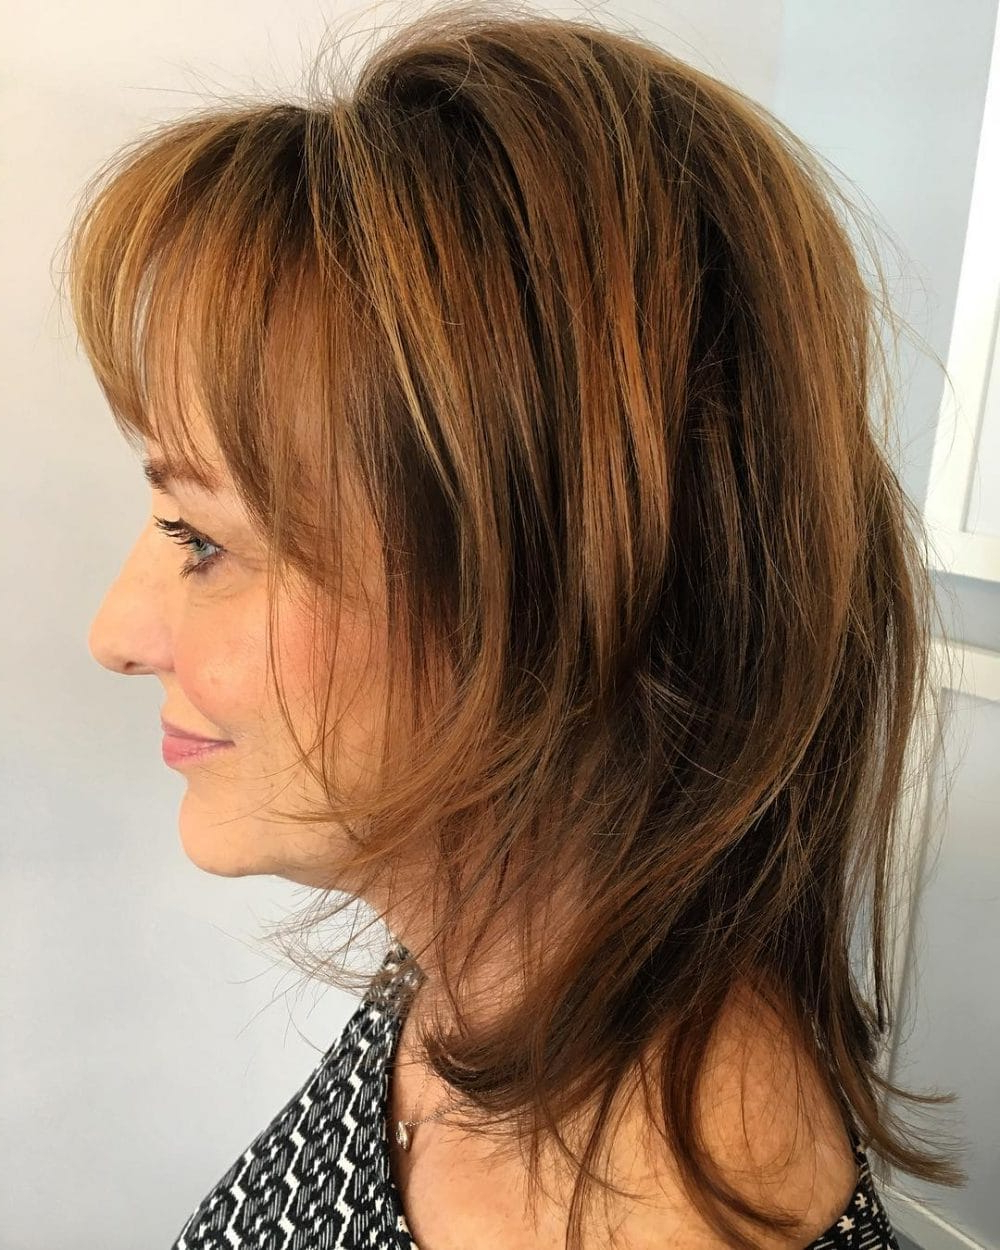 26 Modern Shag Haircuts To Try In 2019 Inside Recent Frizzy Choppy Long Shag Hairstyles (View 2 of 20)